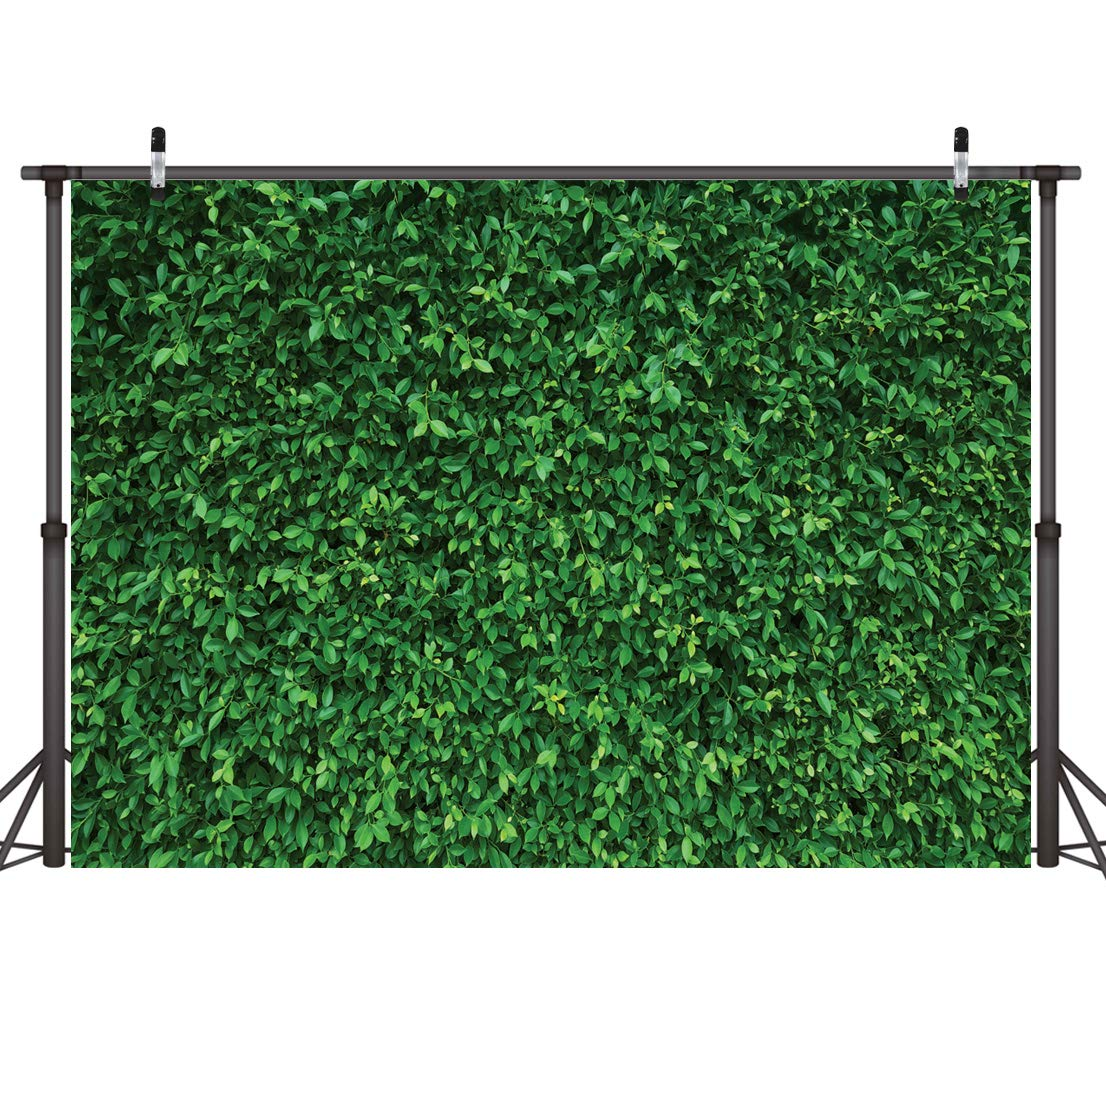 LYWYGG 7x5FT Green Leaves Photography Backdrops Mmicrofiber Nature Backdrop Birthday Background for Birthday Party Seamless Photo Booth Prop Backdrop CP-87 by LYWYGG